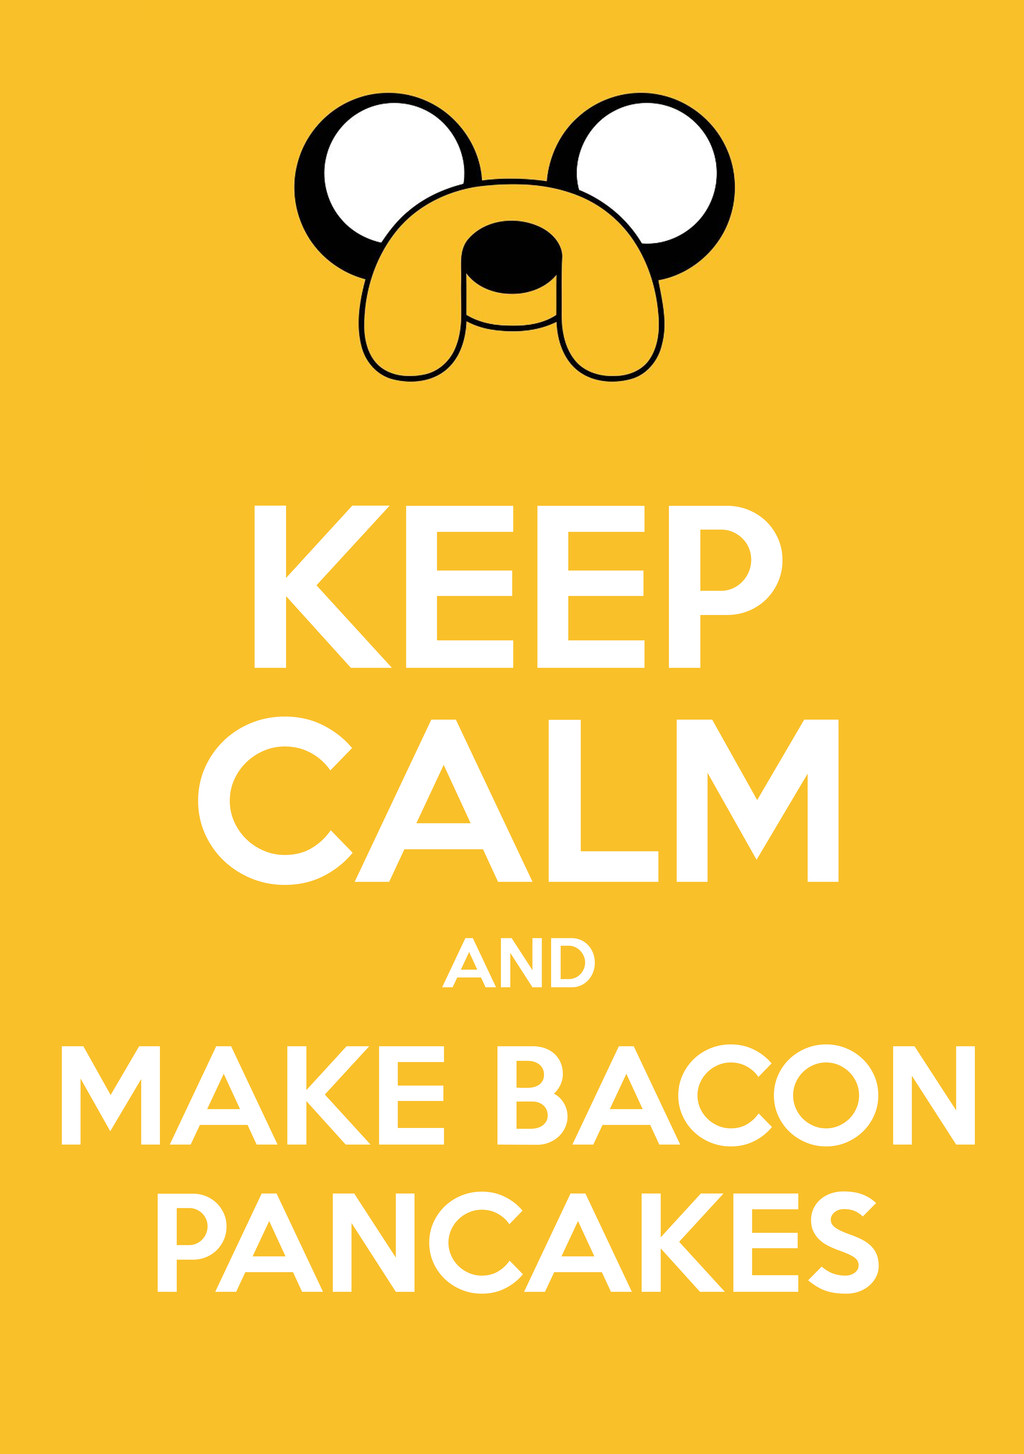 Bacon Pancakes Song  Image Keep calm and make bacon pancakes by ourfullm by